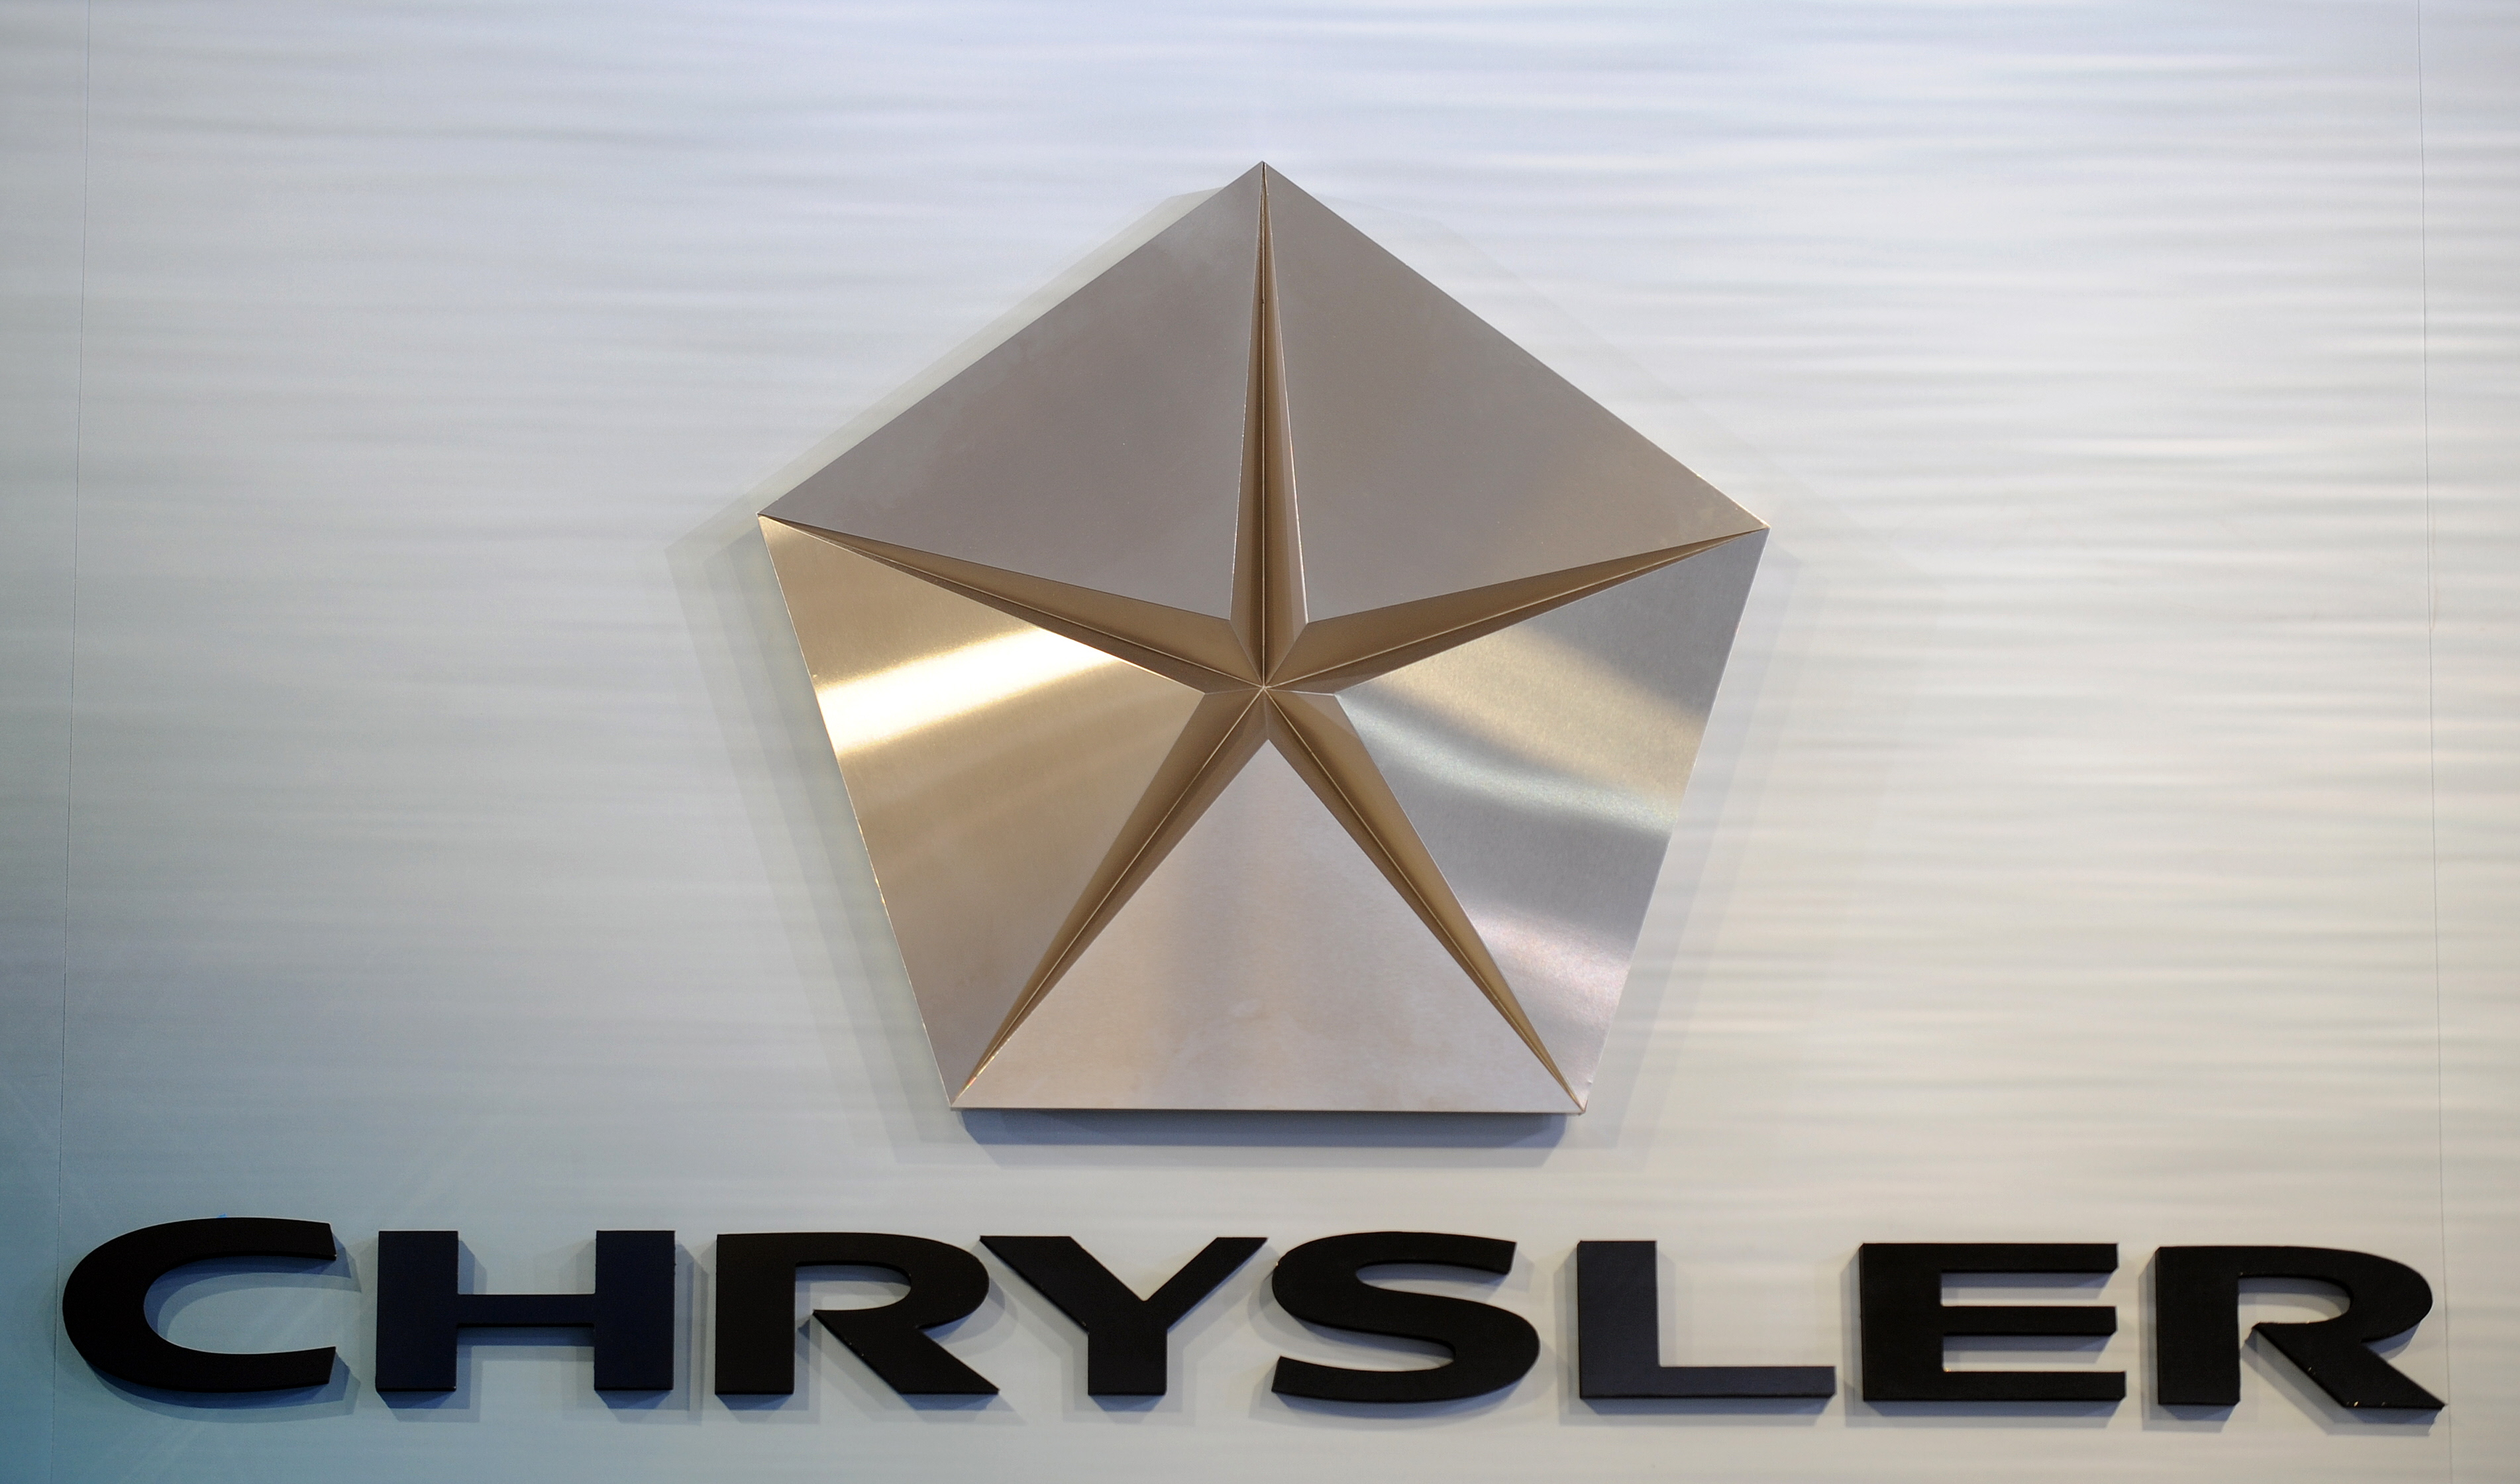 The Chrysler logo is displayed during the Los Angeles Auto Show on December 2, 2009 in Los Angeles, California